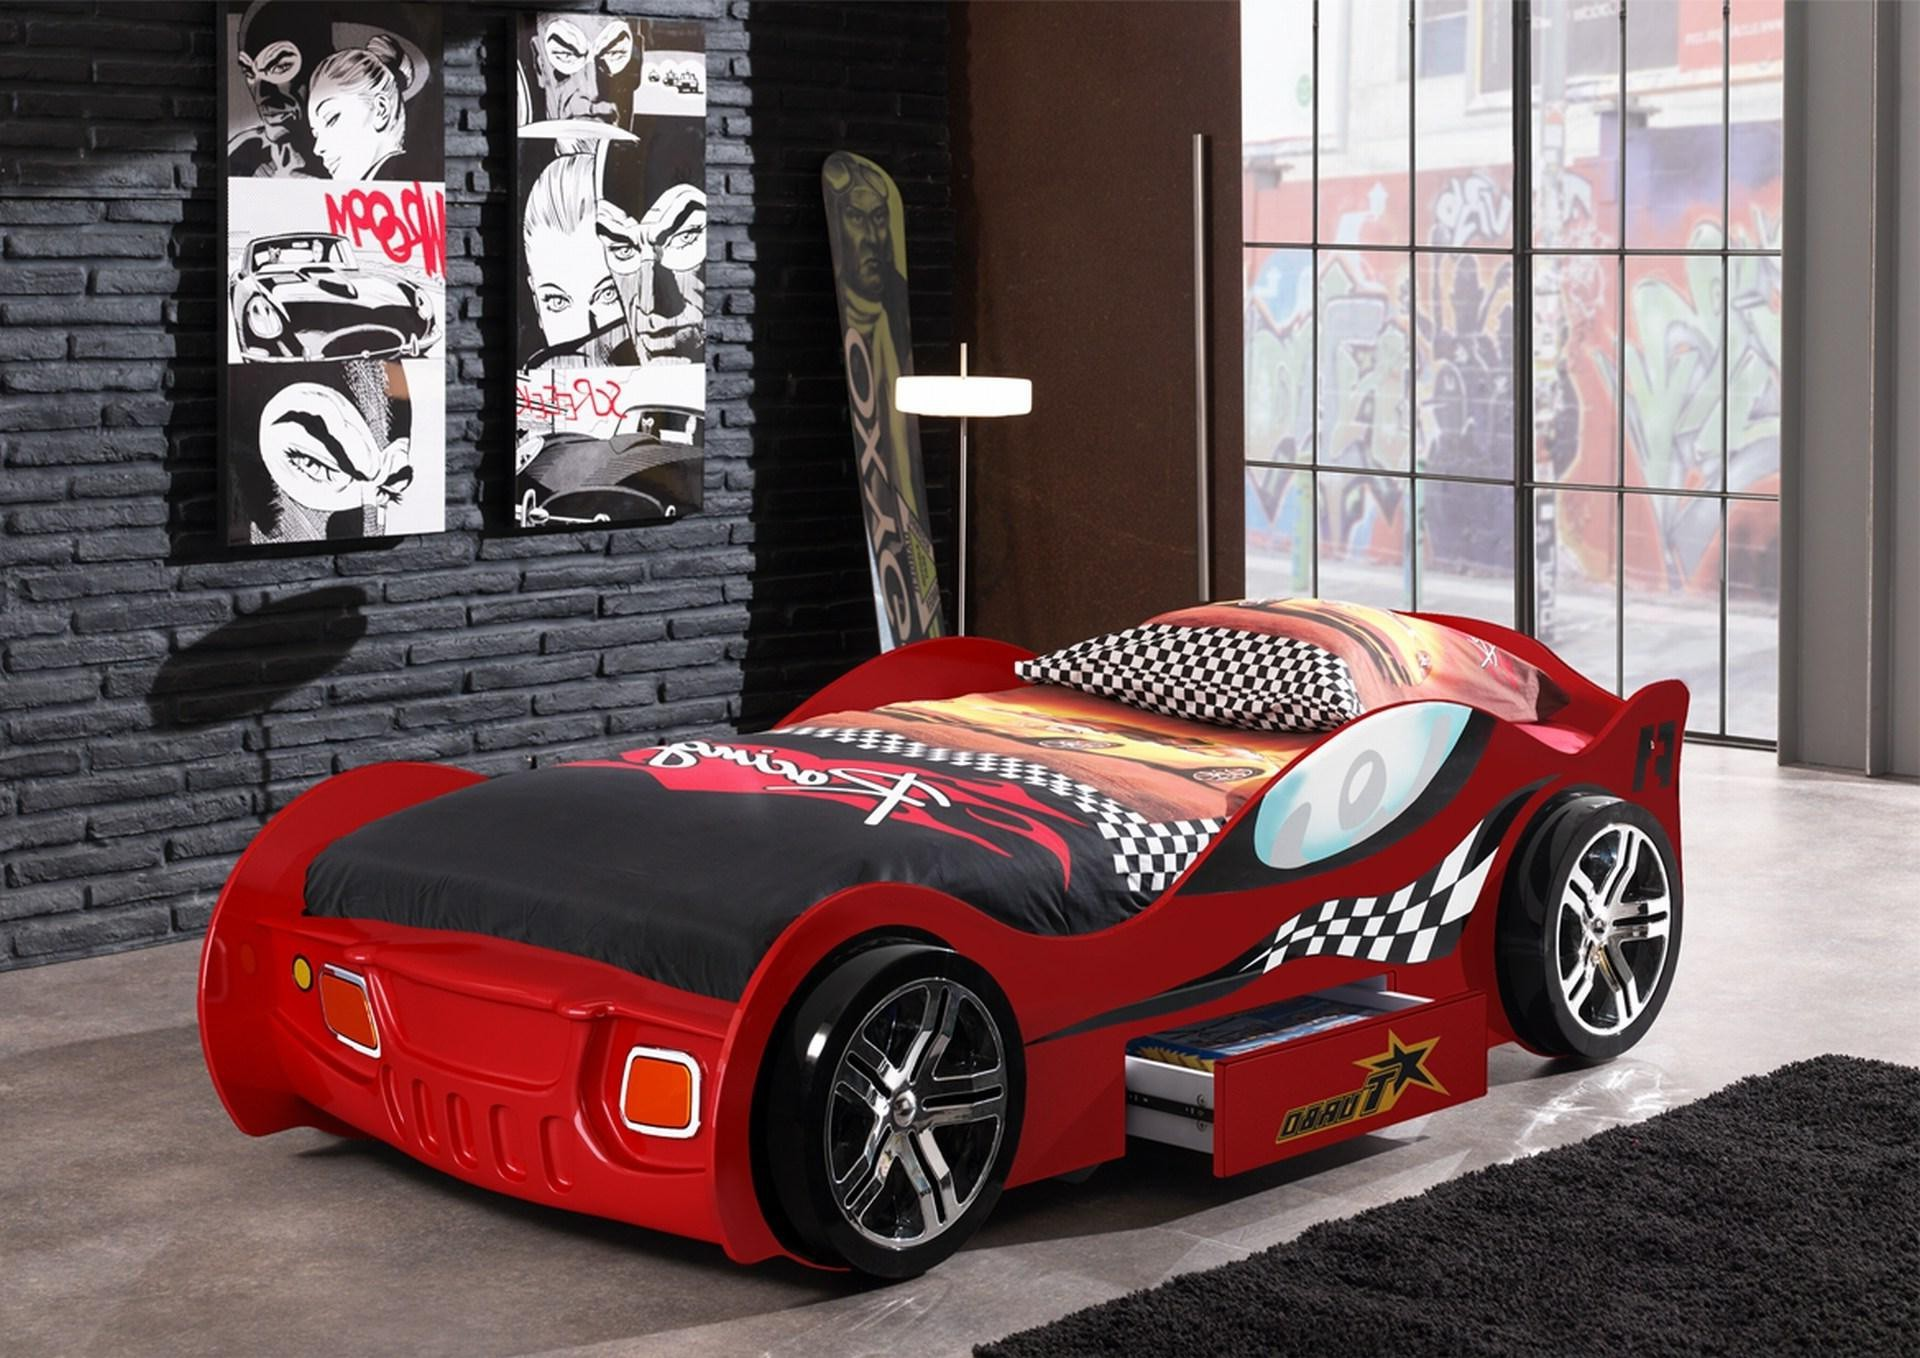 lit voiture garcon lit voiture garcon with lit voiture garcon simple lit enfant voiture de. Black Bedroom Furniture Sets. Home Design Ideas